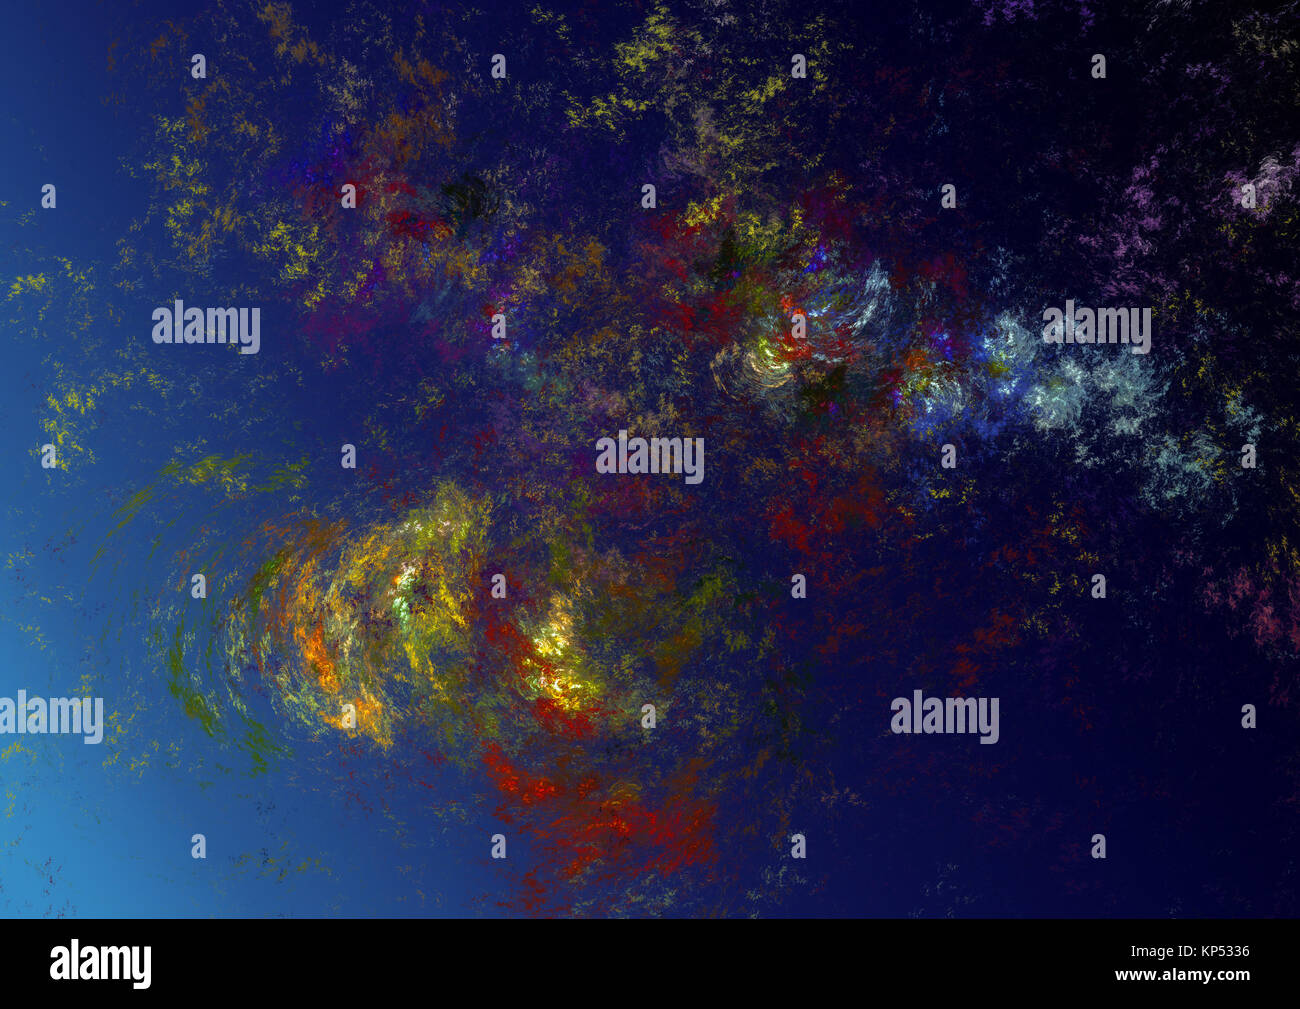 Flame fractal, digitally generated image - Stock Image